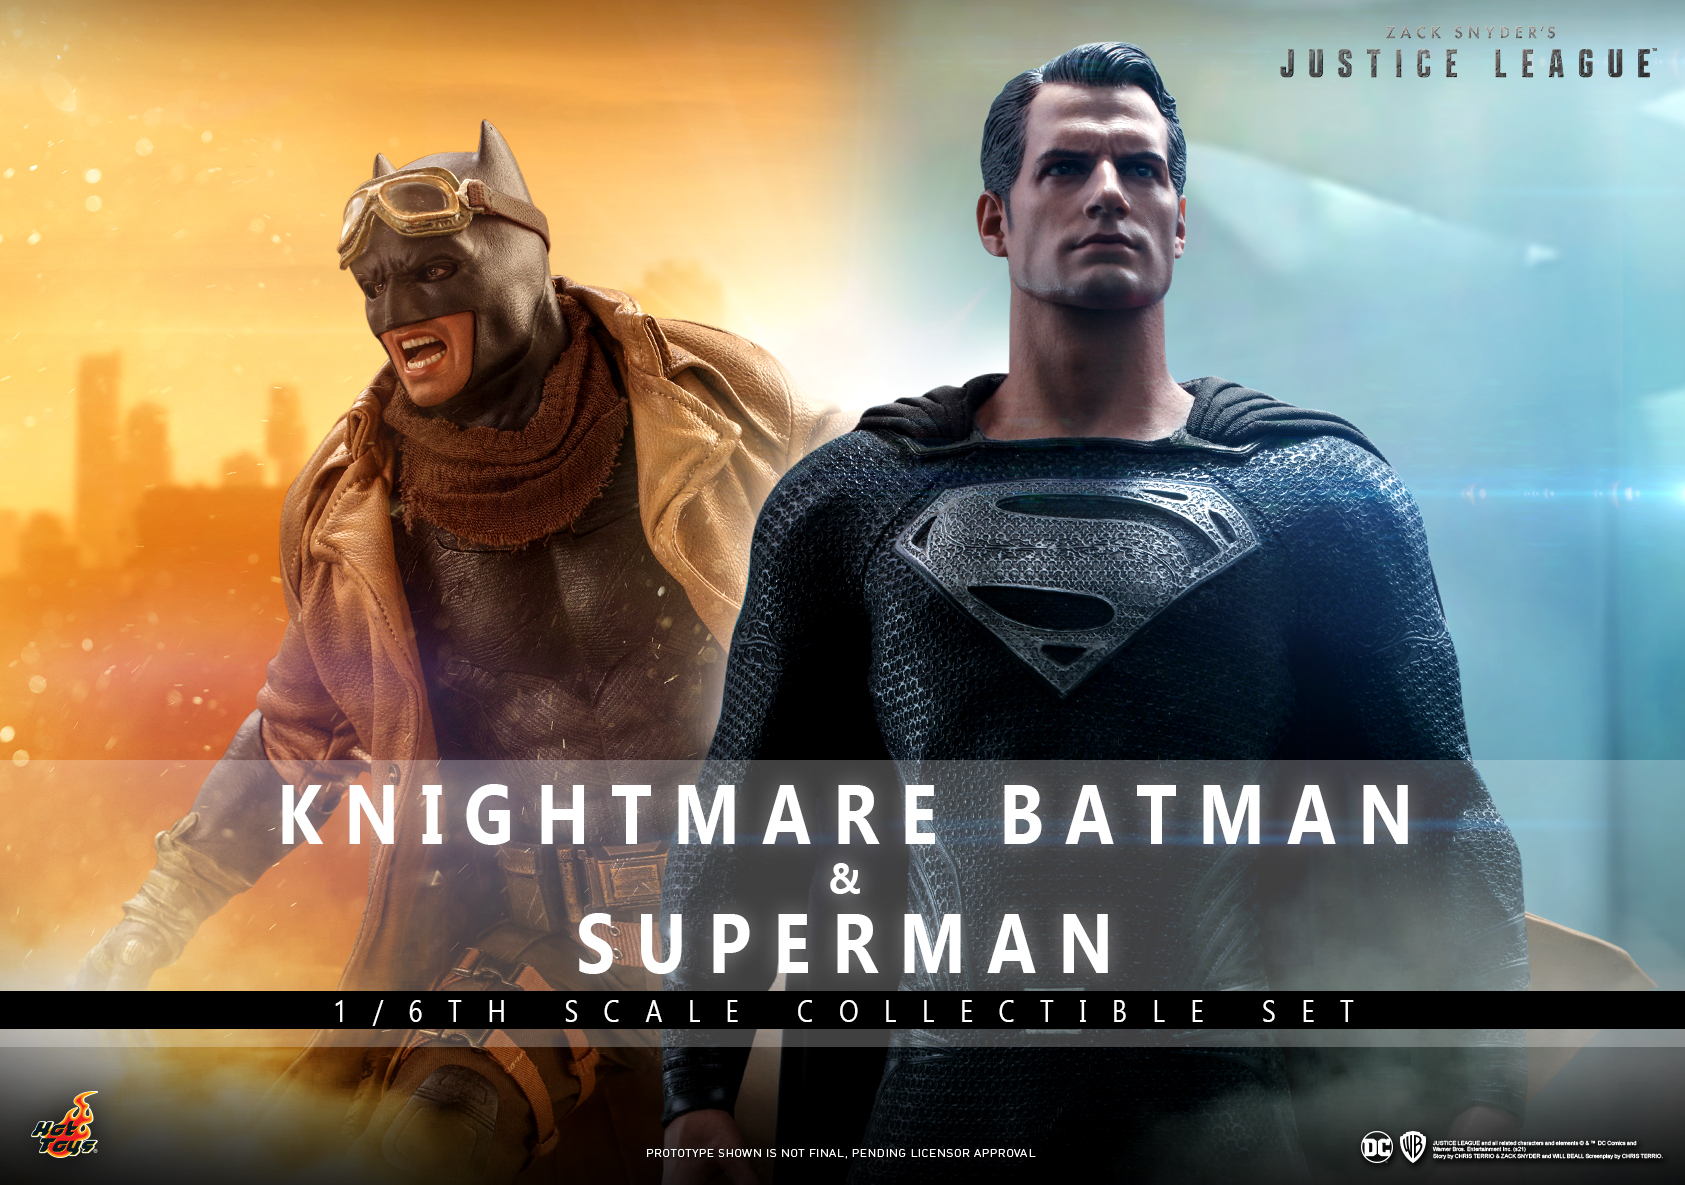 Hot Toys - Zack Snyder Justice League - Knightmare Batman and Superman Collectible Set_Poster